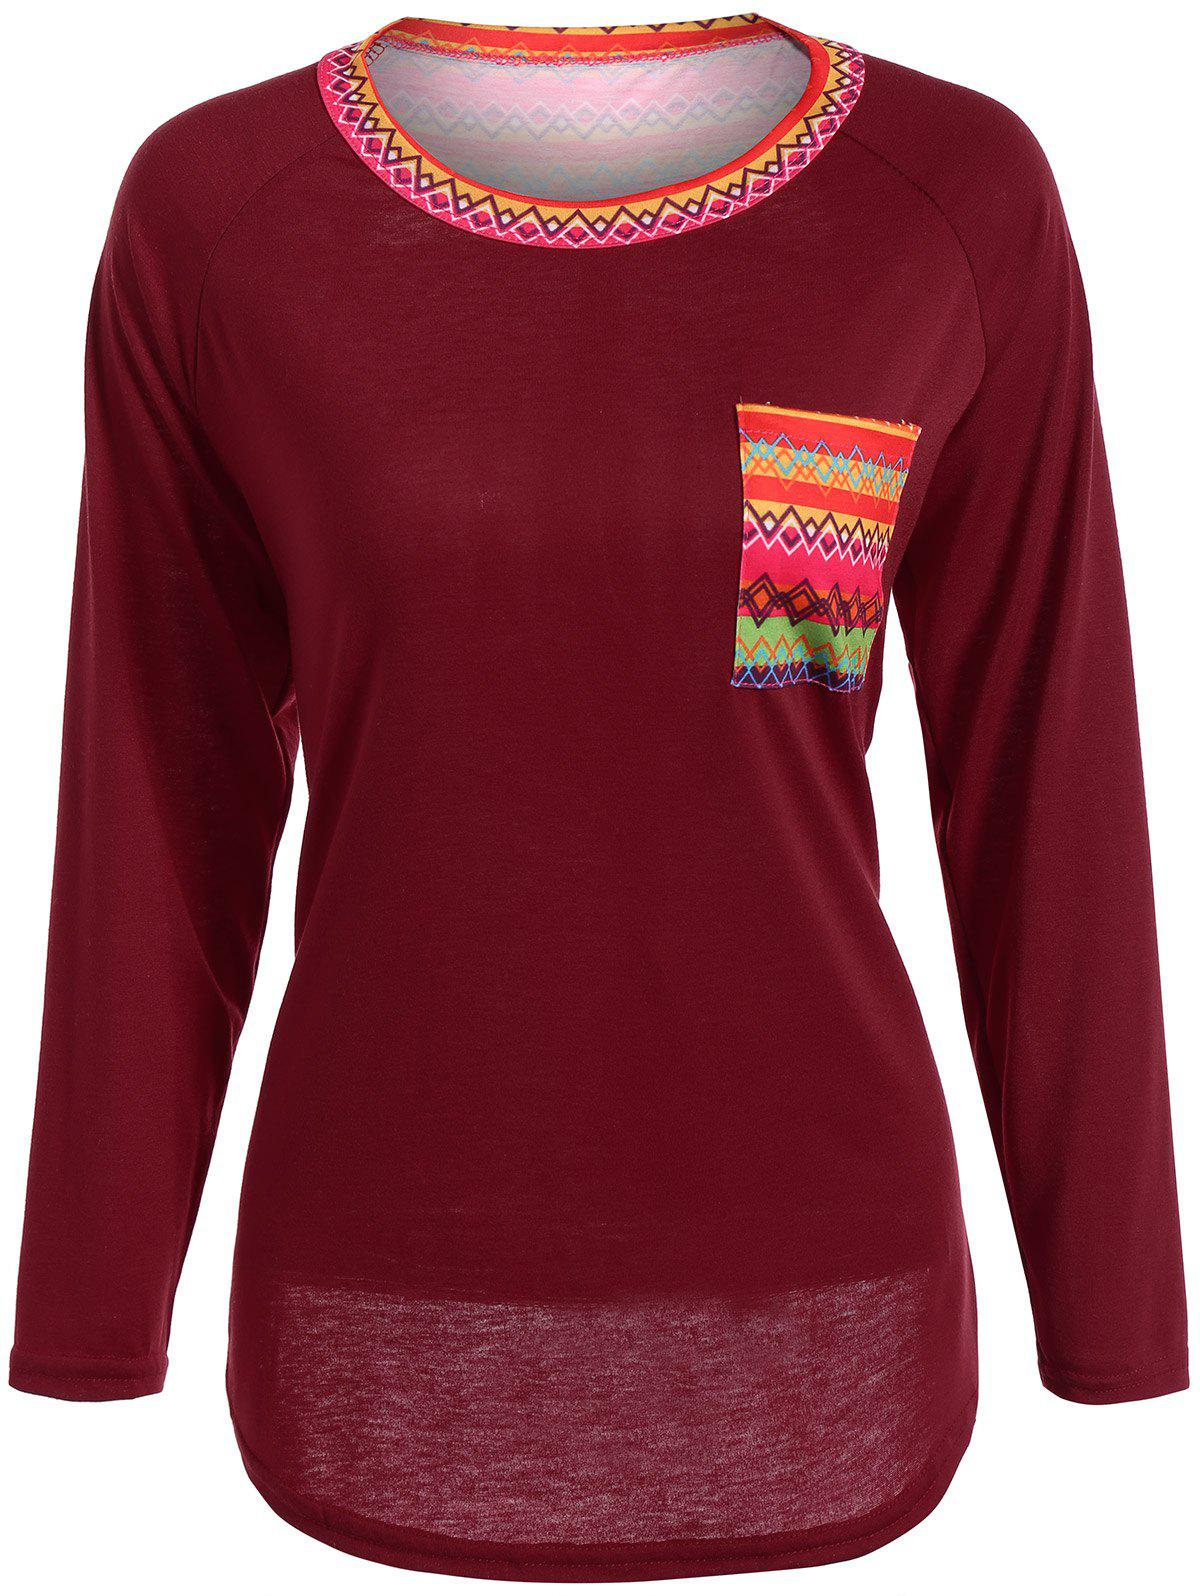 Round Neck Printed Pocket Tunic T-Shirt - RED S